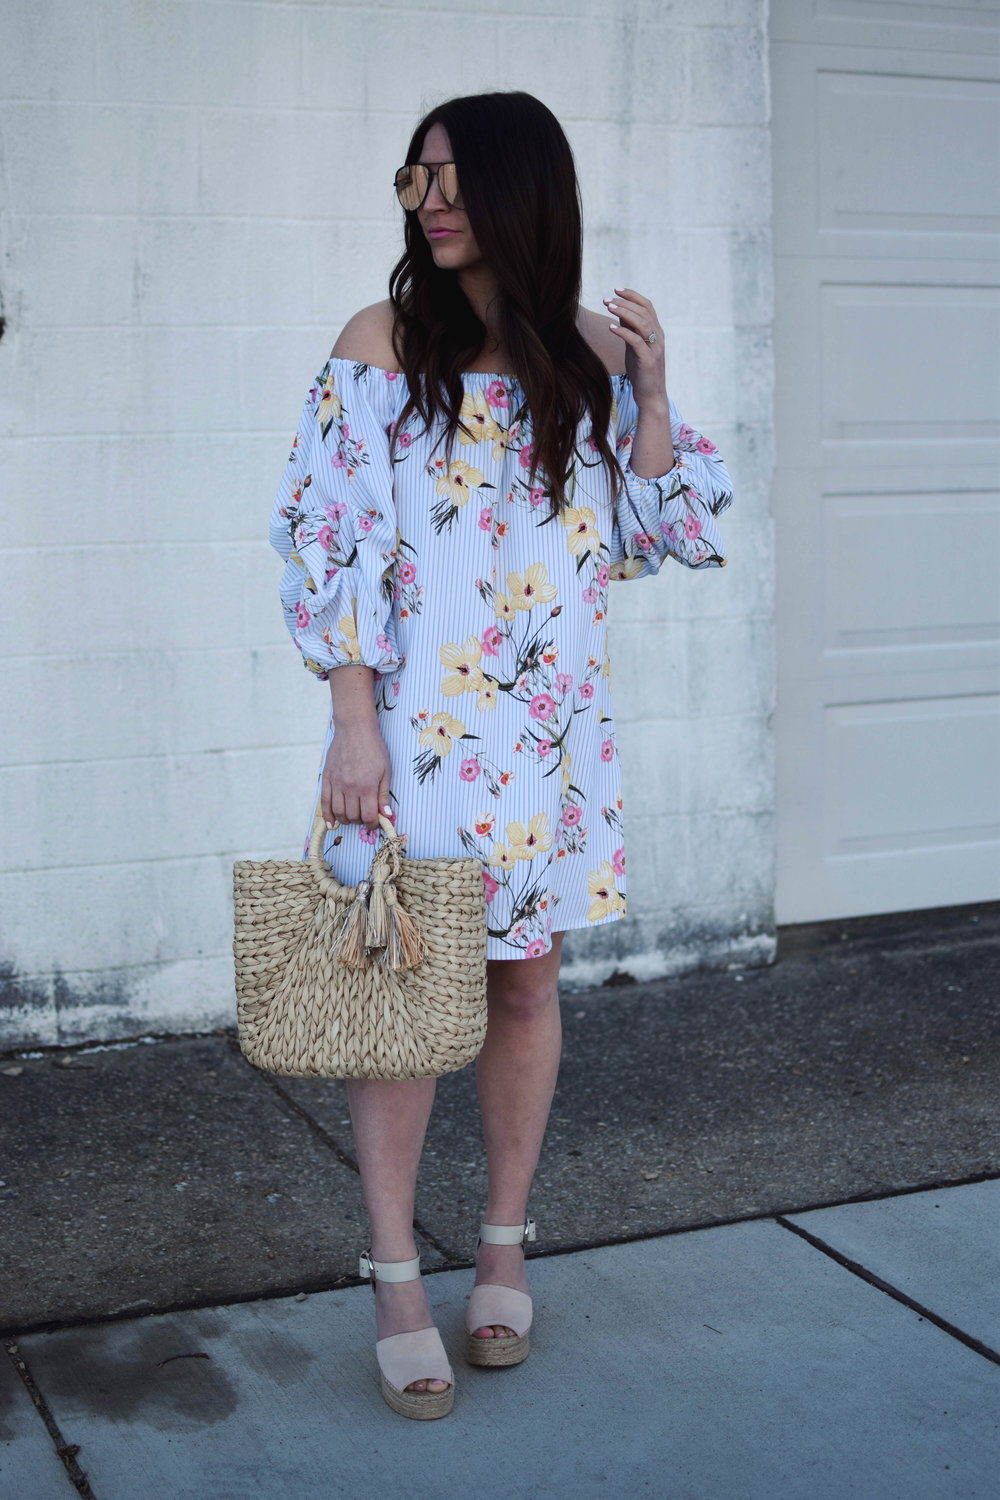 Floral Dress for Easter | Pine Barren Beauty | easter outfit idea, easter dress, floral dress for spring, spring fashion, spring outfit idea, what to wear to a spring wedding, straw bag, espadrille wedges